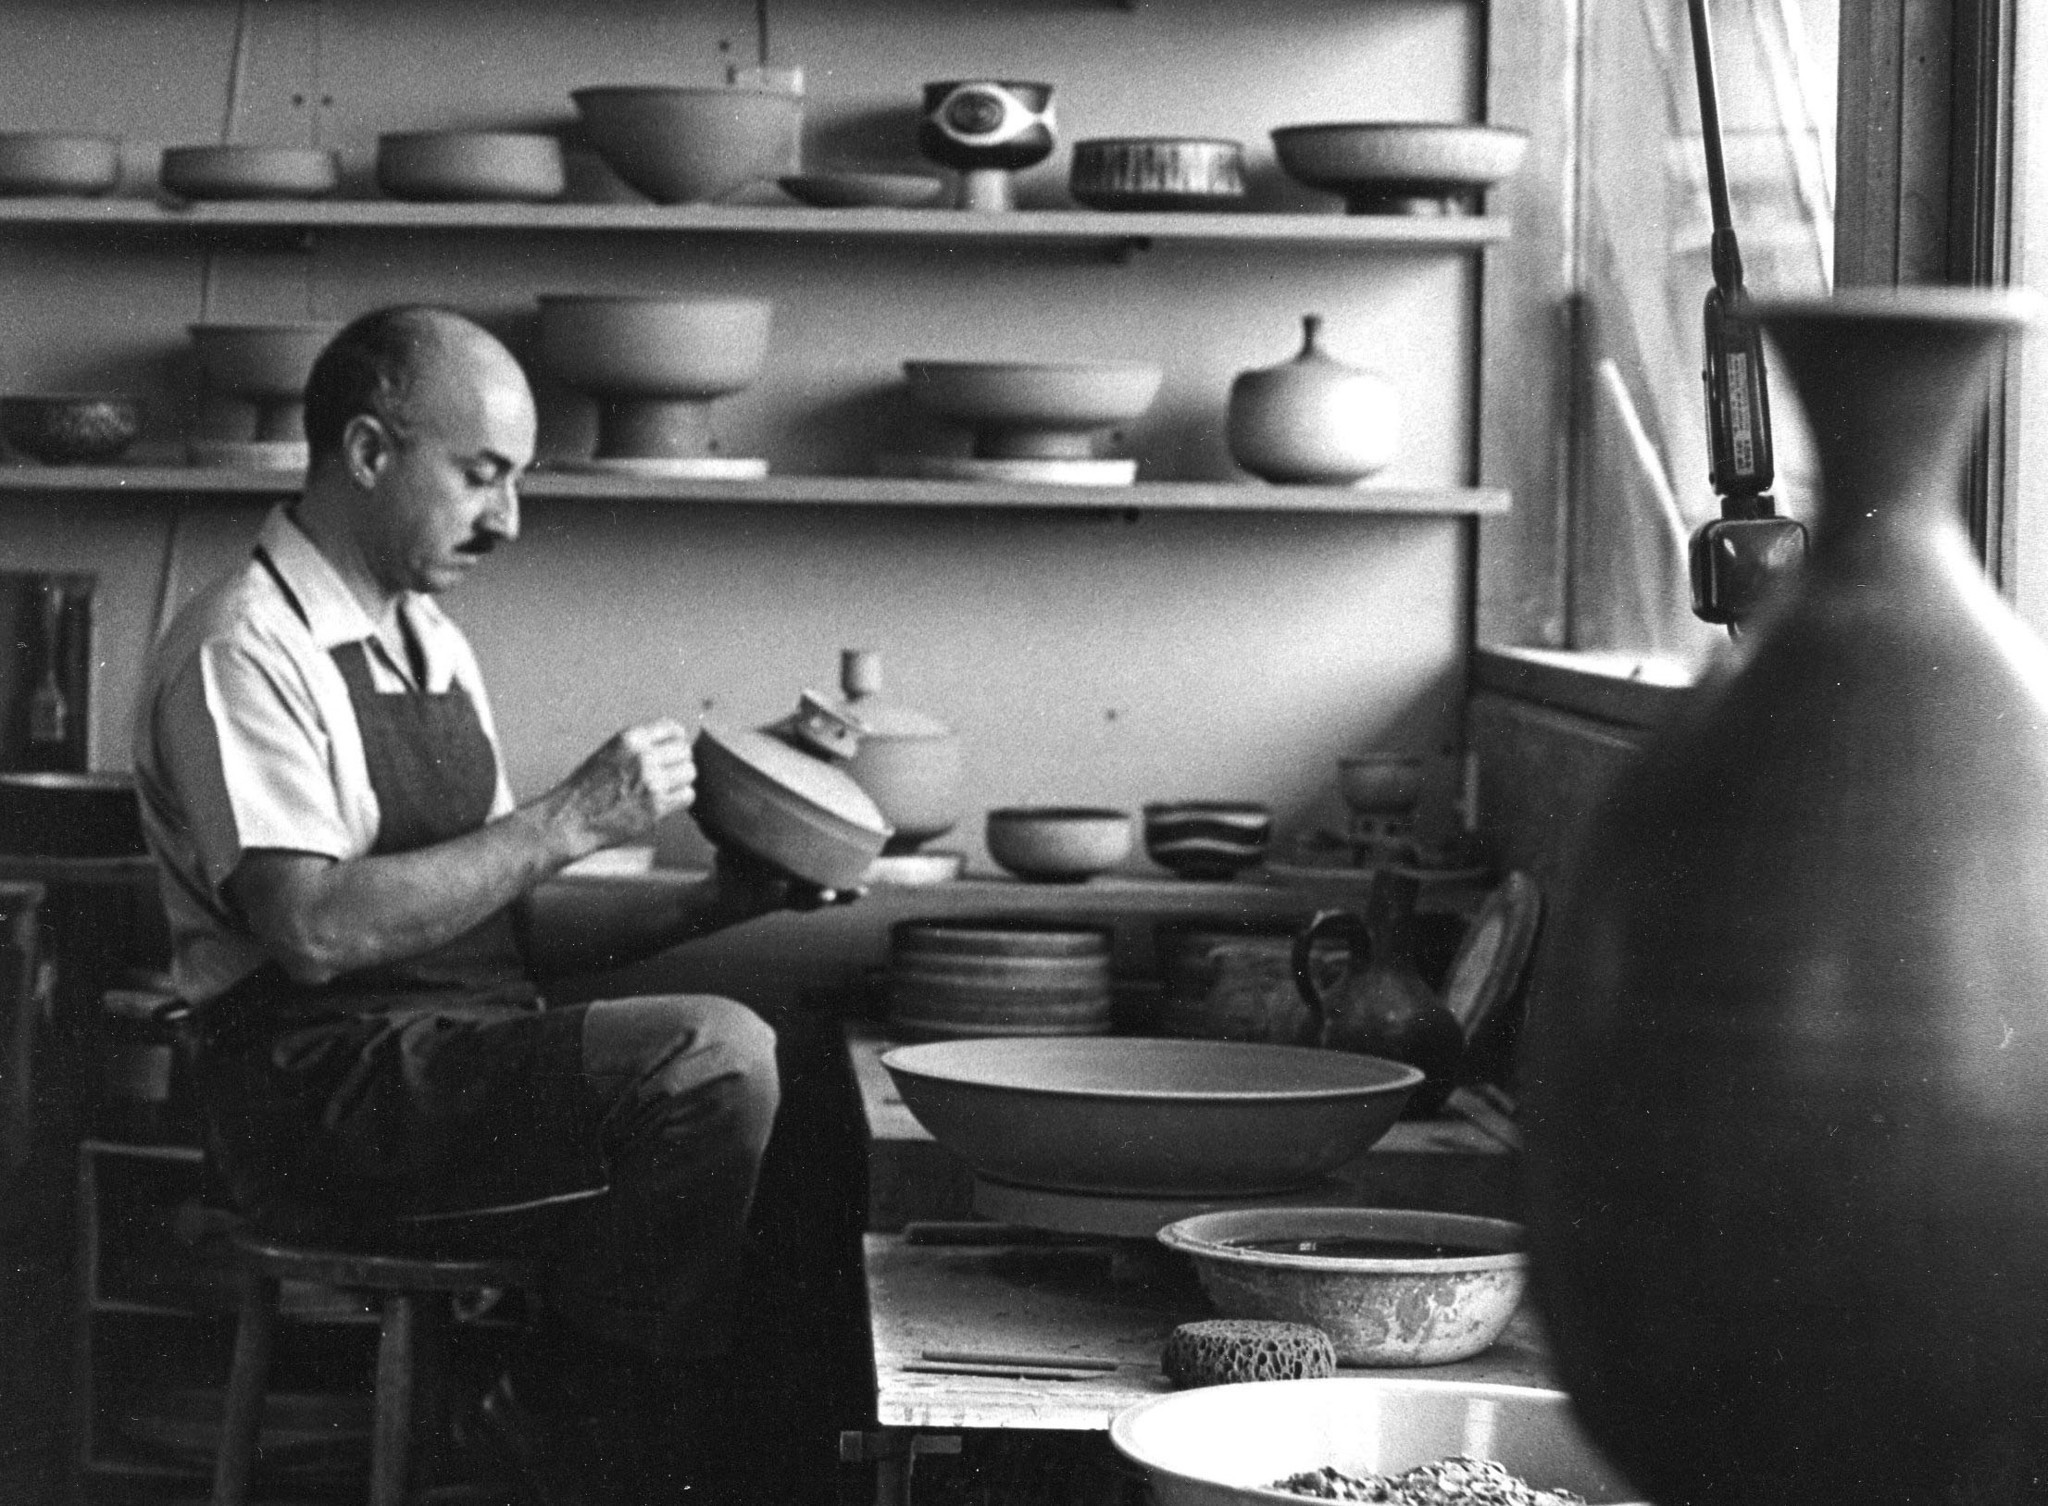 Harrison Mcintosh Southland Artist Who Pushed Ceramics